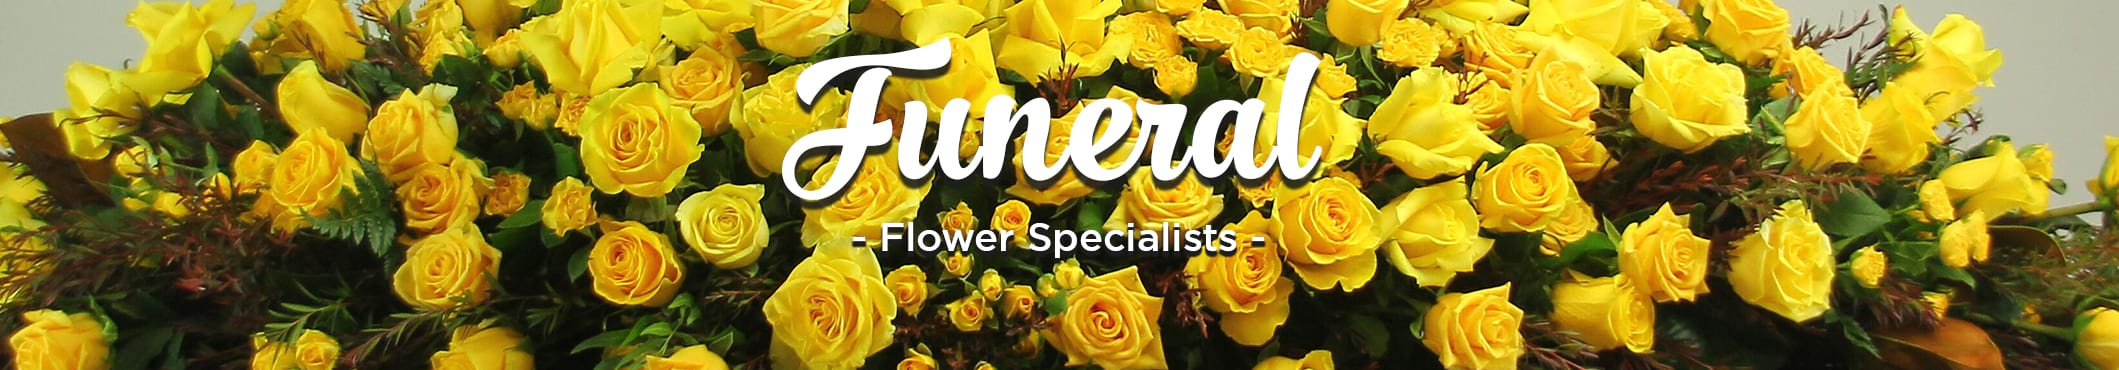 Sydney Funeral Flower Specialists - Flowers for Everyone